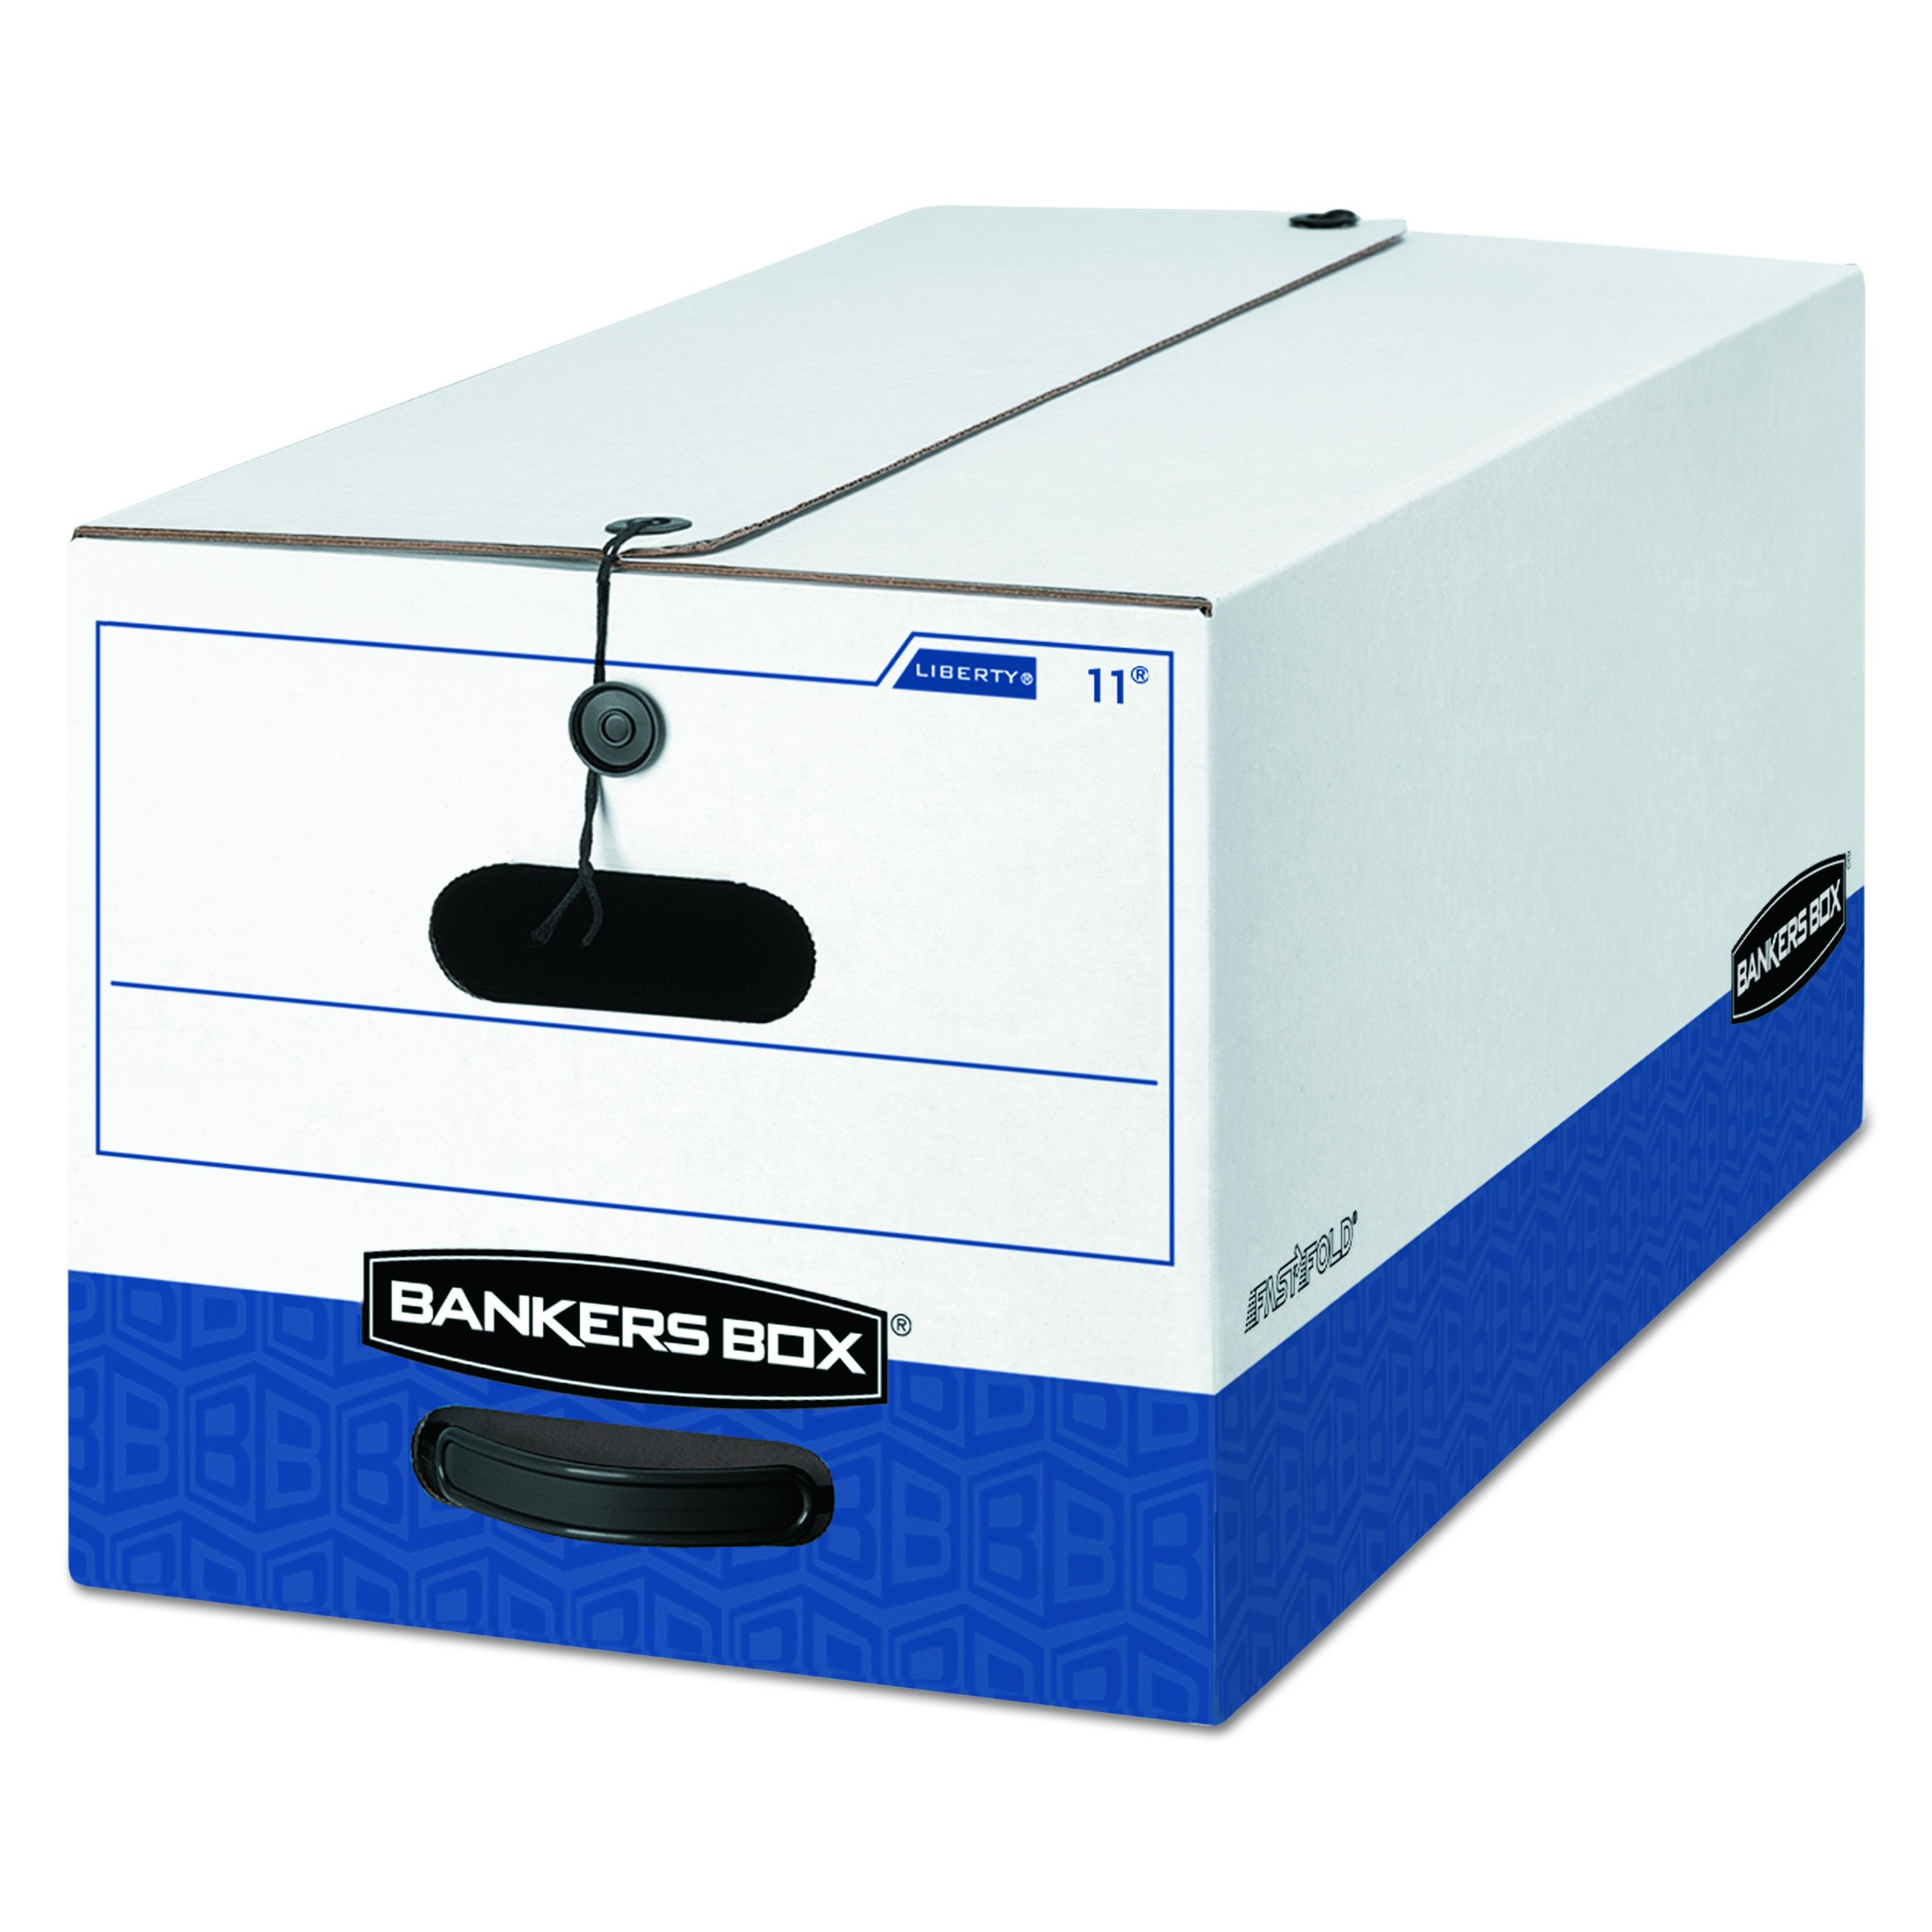 Bankers Box 00011 LIBERTY Heavy-Duty Strength Storage Box, Letter, 12 x 24 x 10, White/Blue (Case of 12)